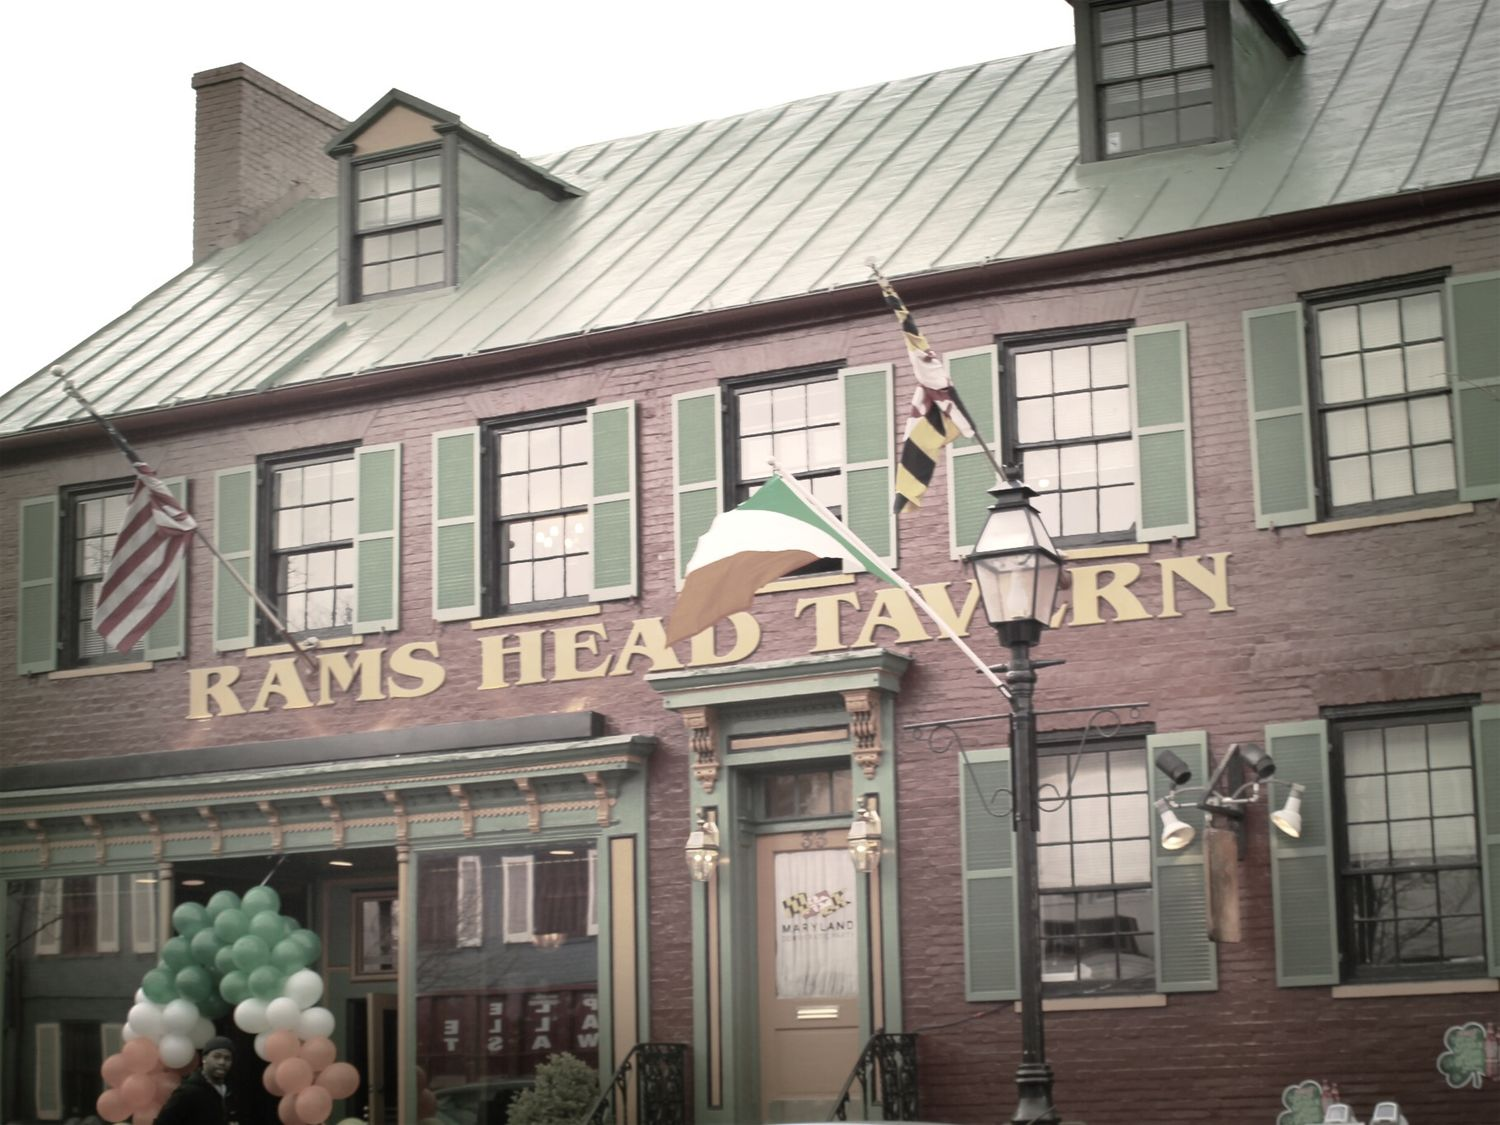 Annapolis Maryland sometimes visiting home makes me more Homesick  the old Hangout Hanging Out Enjoying Life Hello World Streetphotography Tavern  Rams Head Tavern